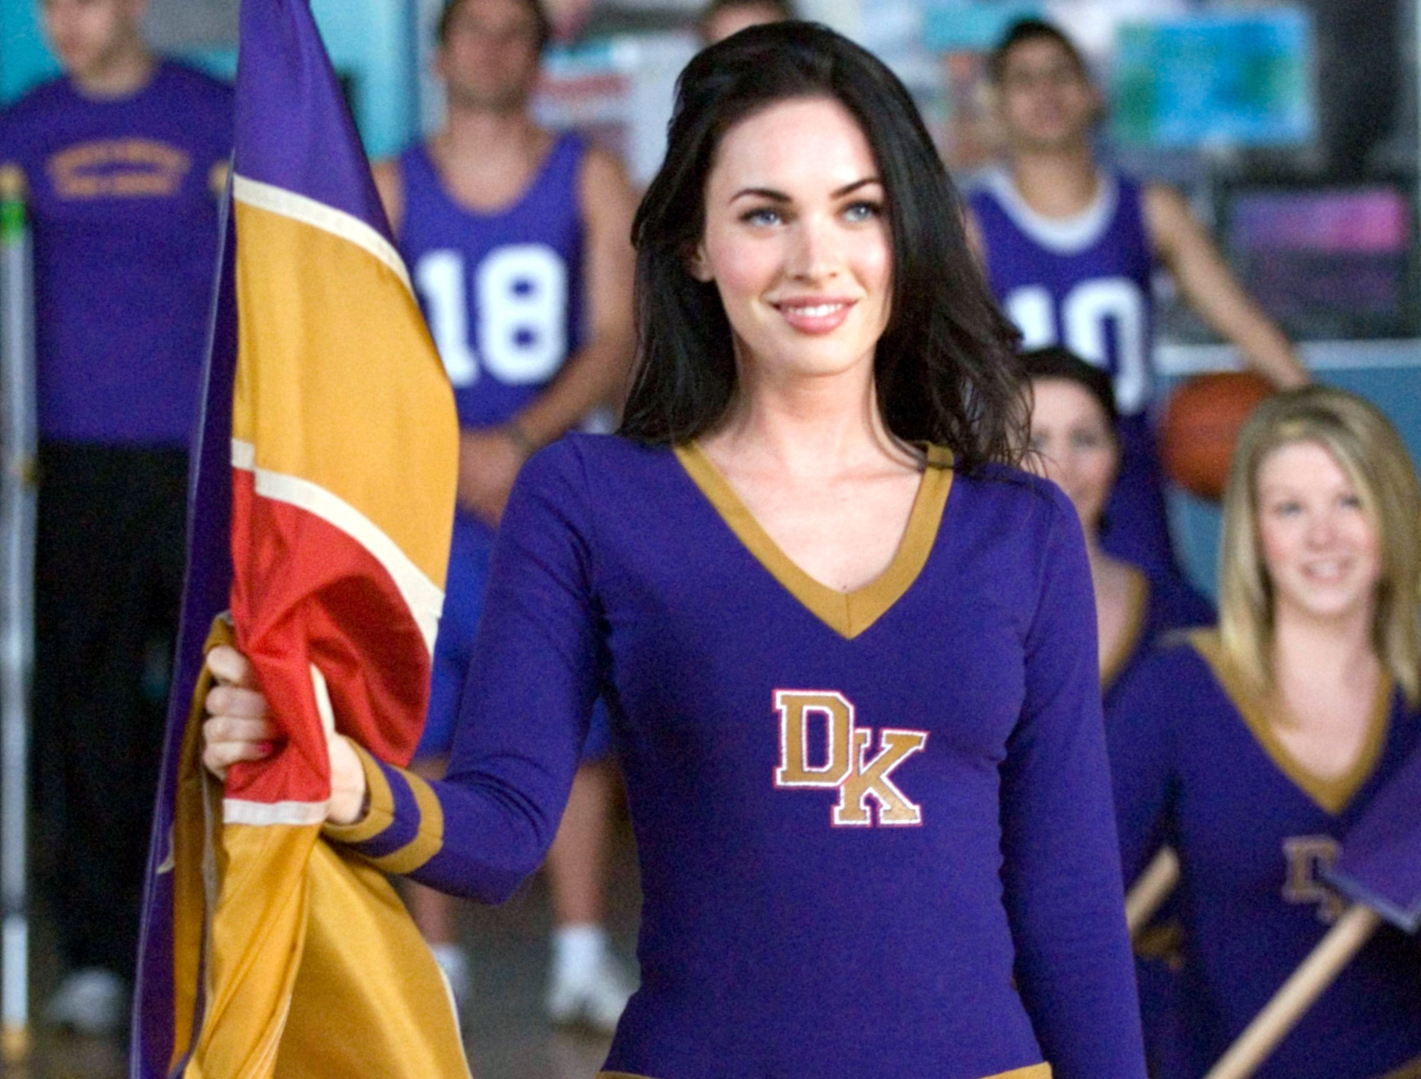 11 Celebrities Who Used to Be Cheerleaders